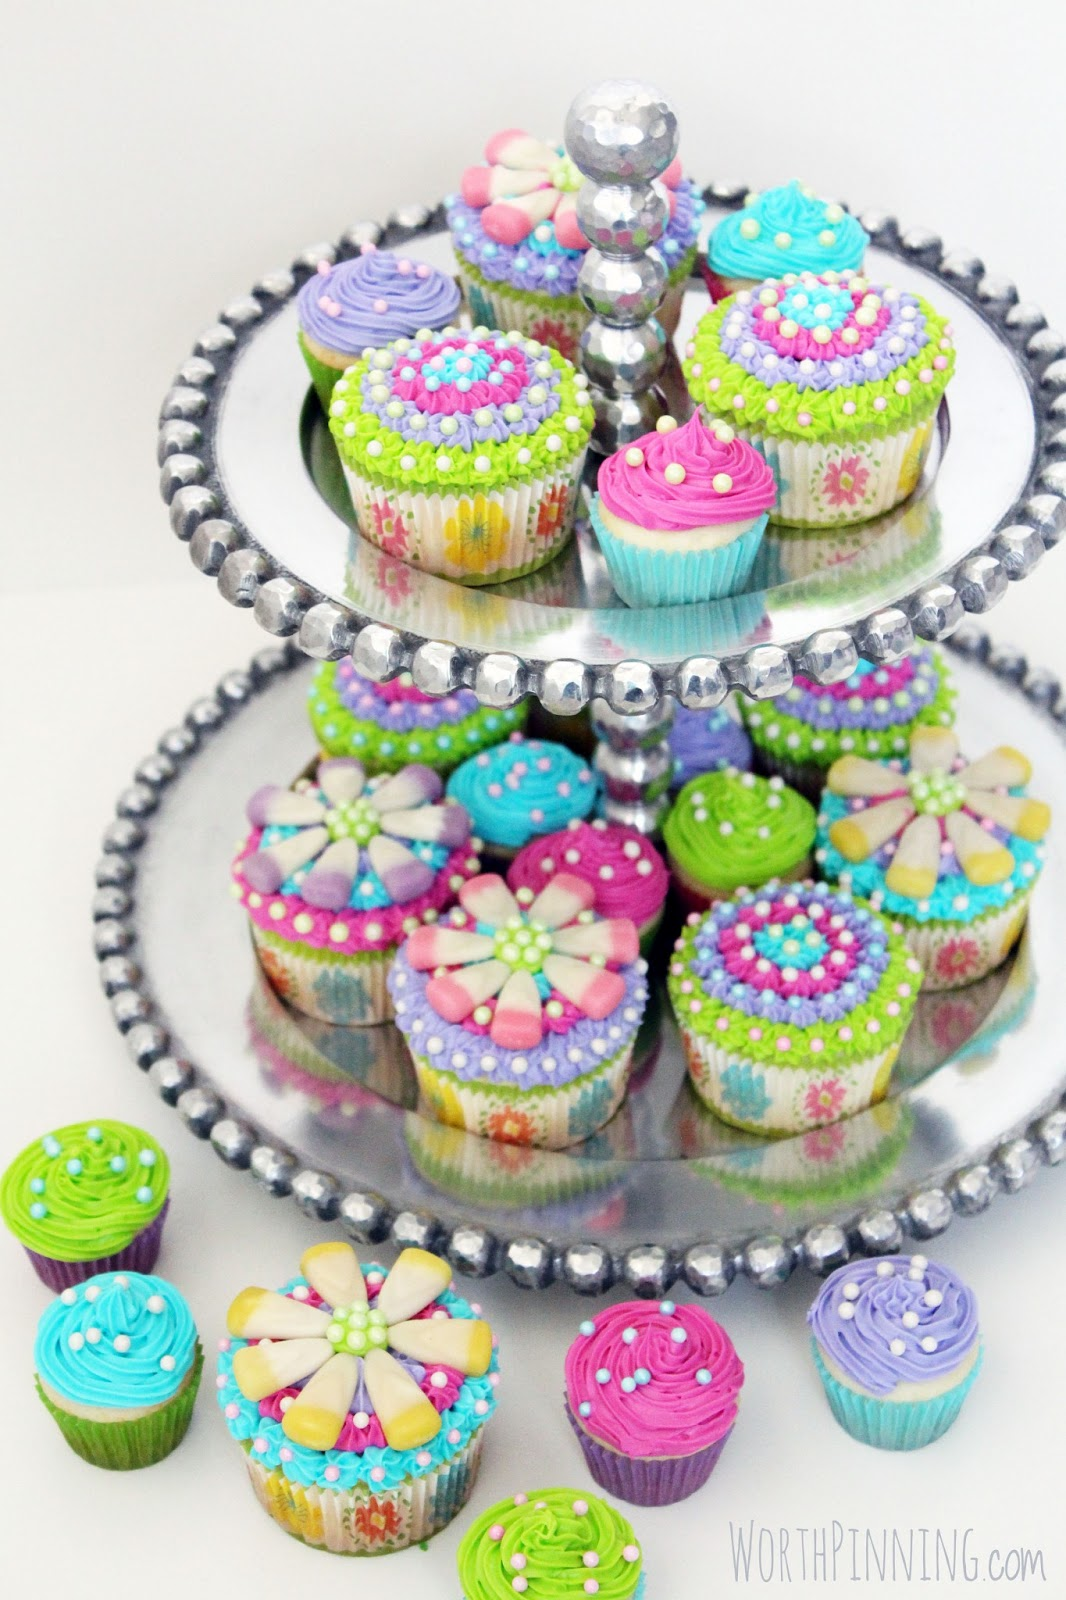 Birthday Cake Flavored Cupcakes